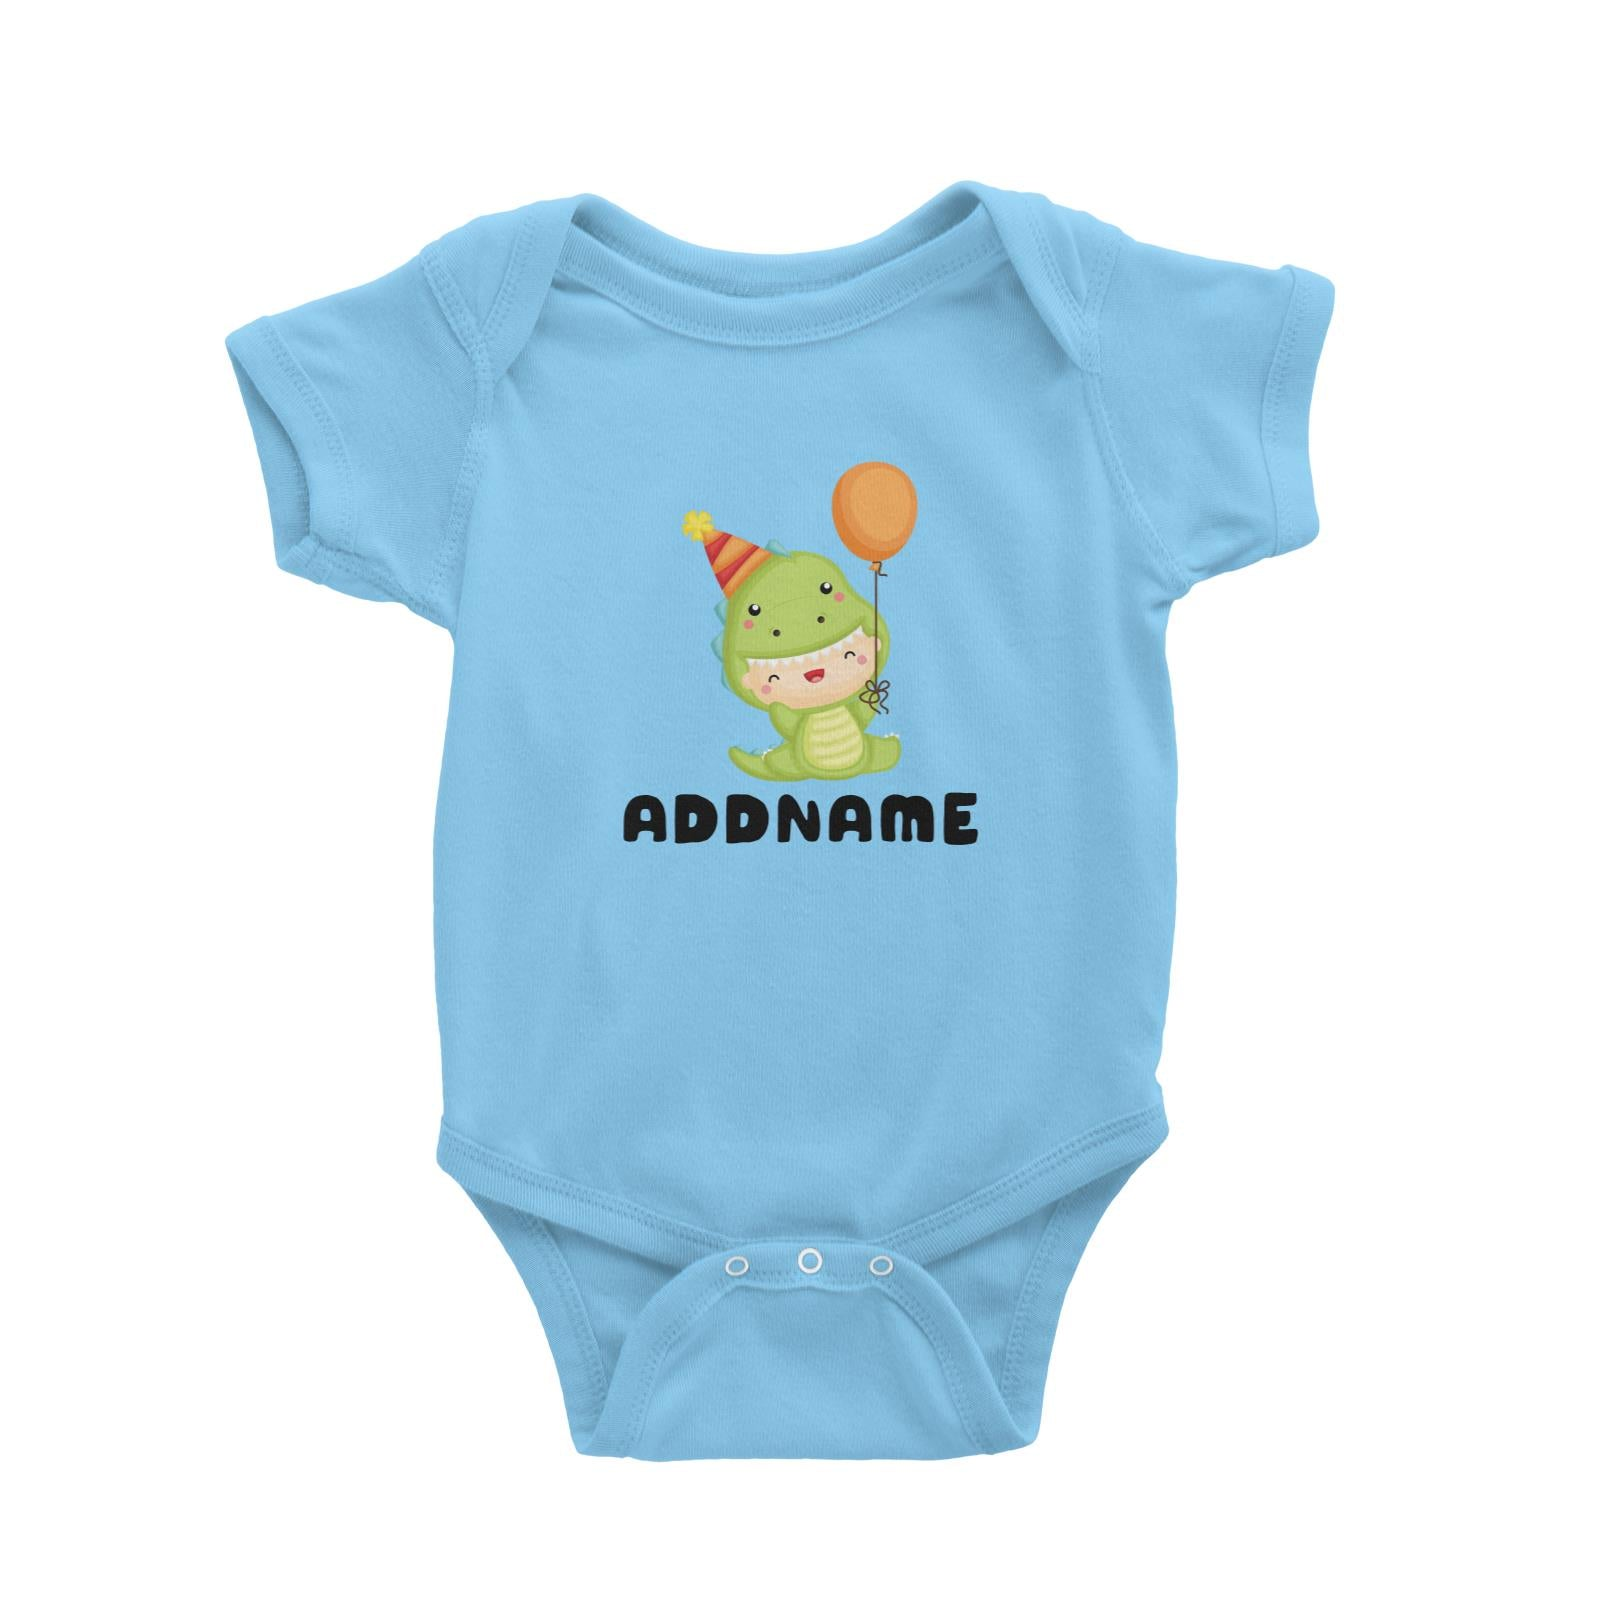 Birthday Dinosaur Happy Baby Wearing Dinosaur Suit And Party Hat Addname Baby Romper